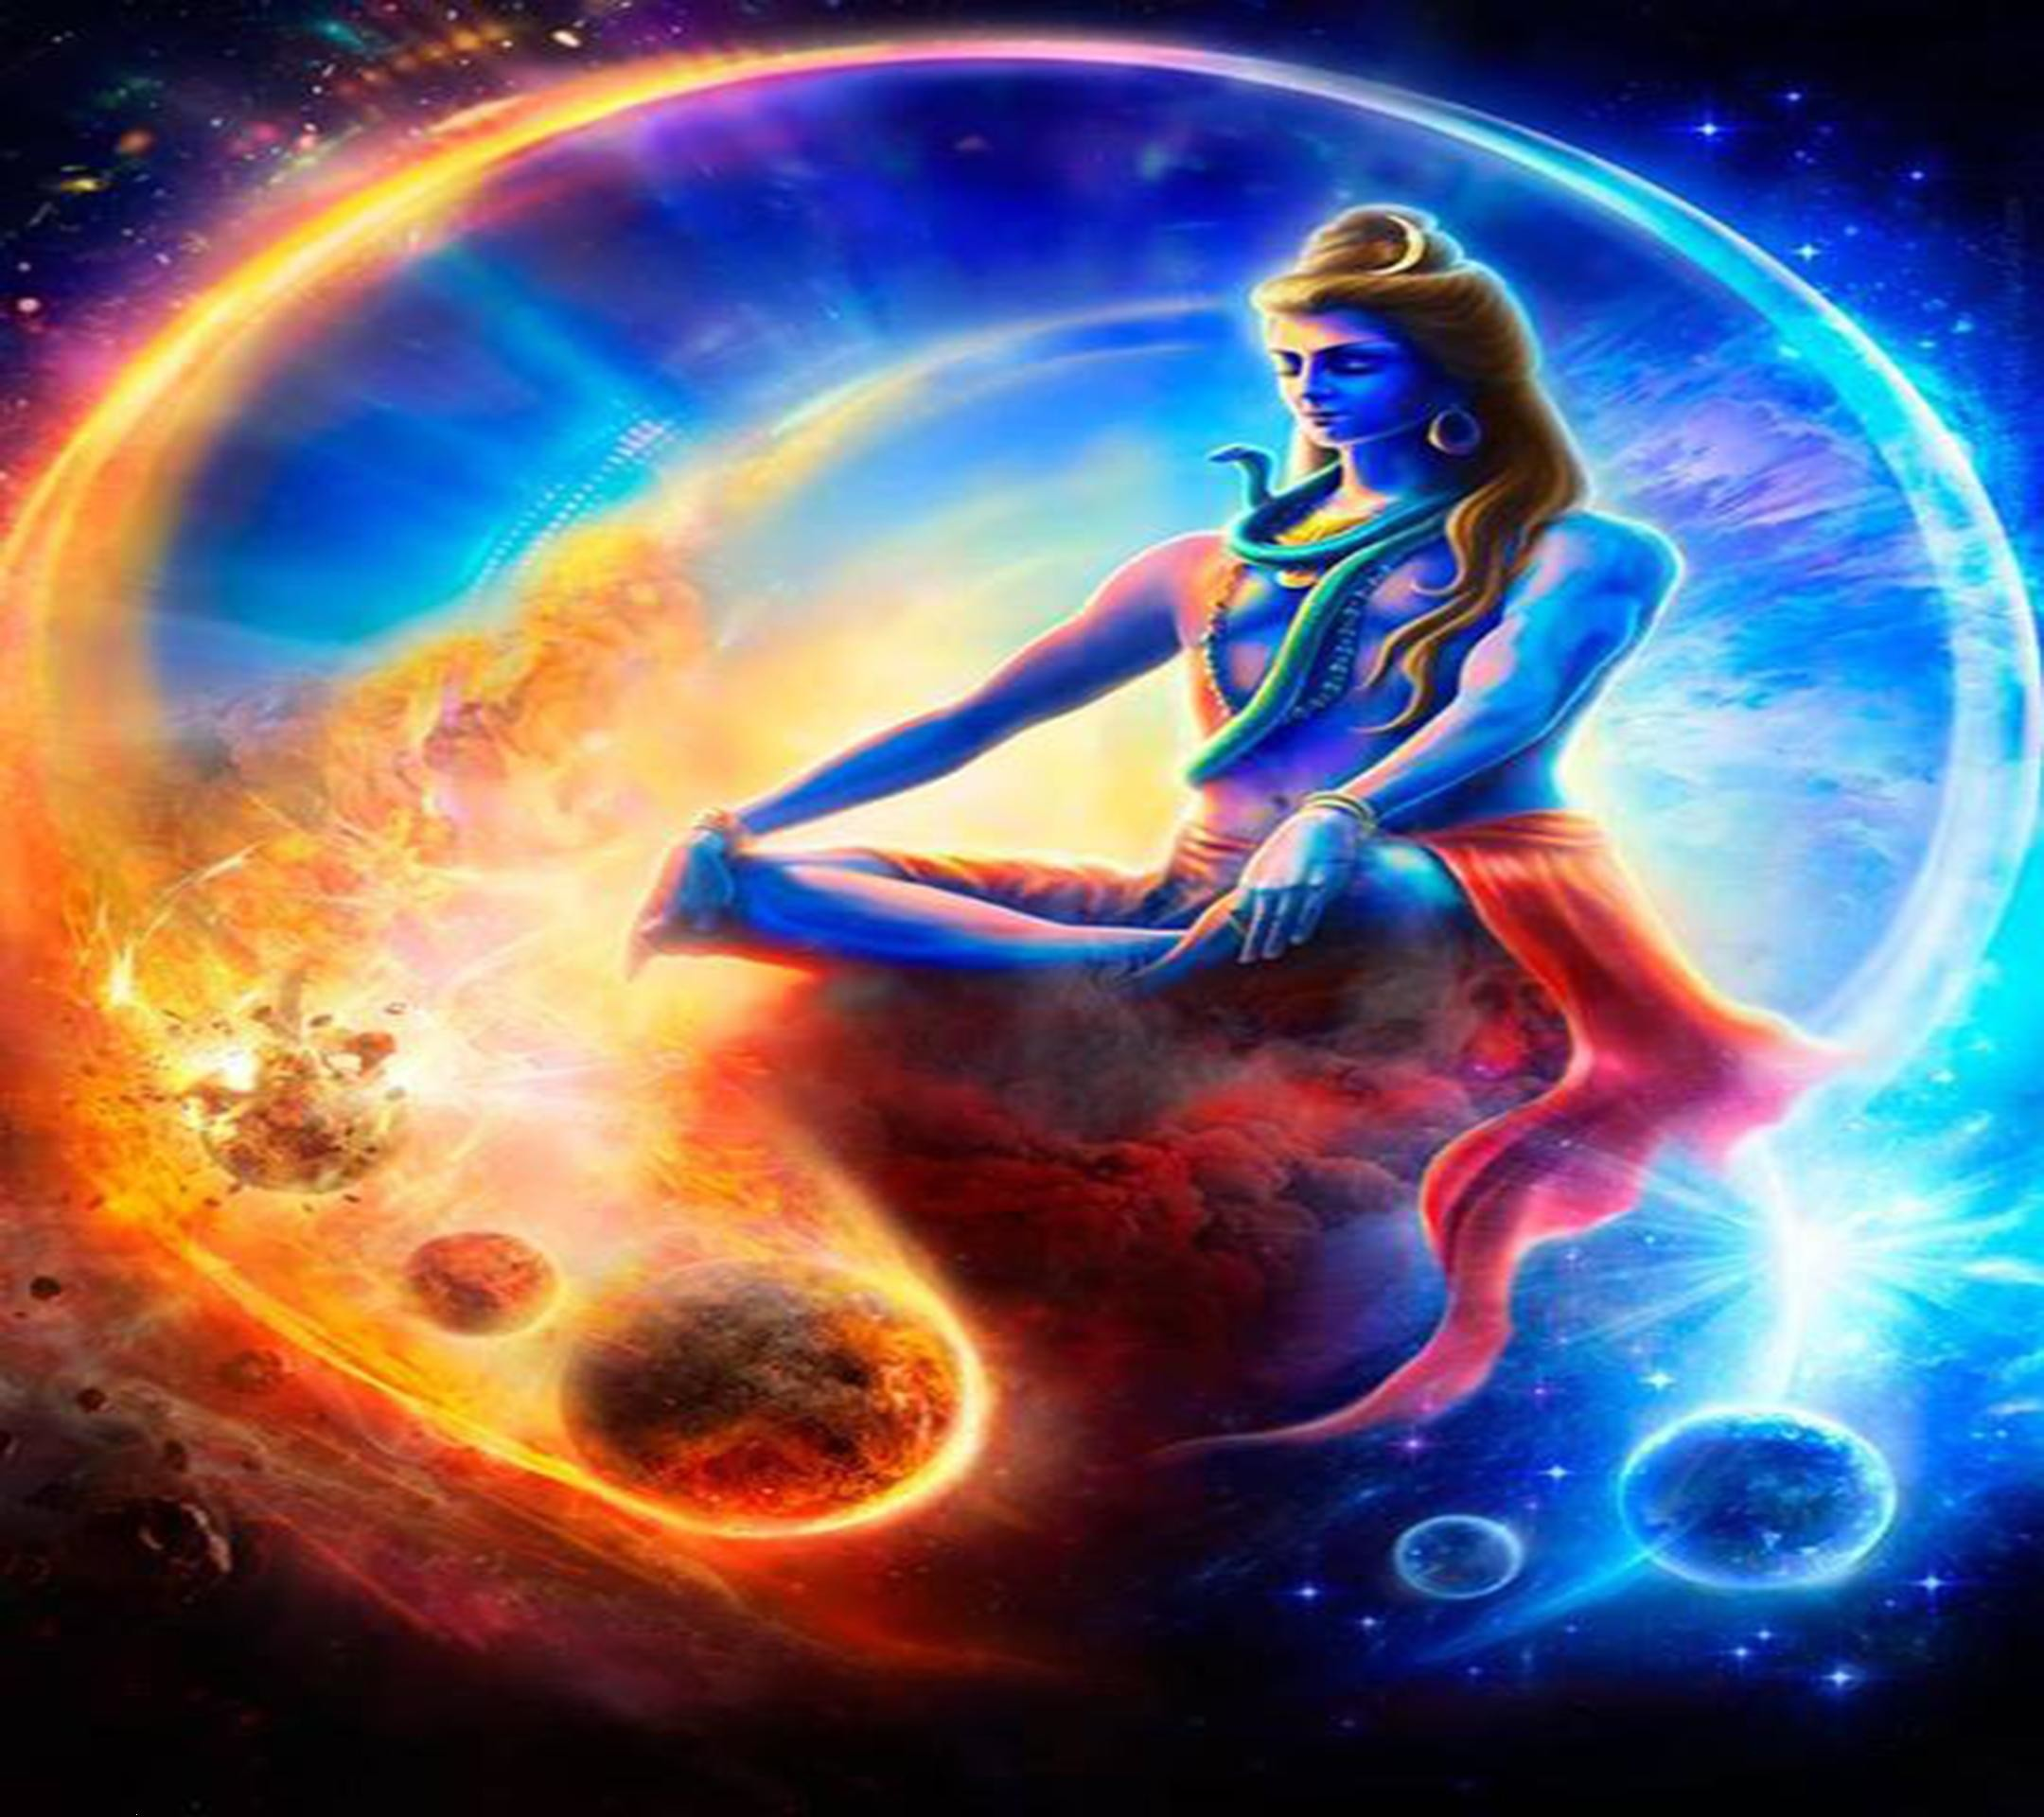 Lord Shiva Wallpapers High Resolution (73+ Images